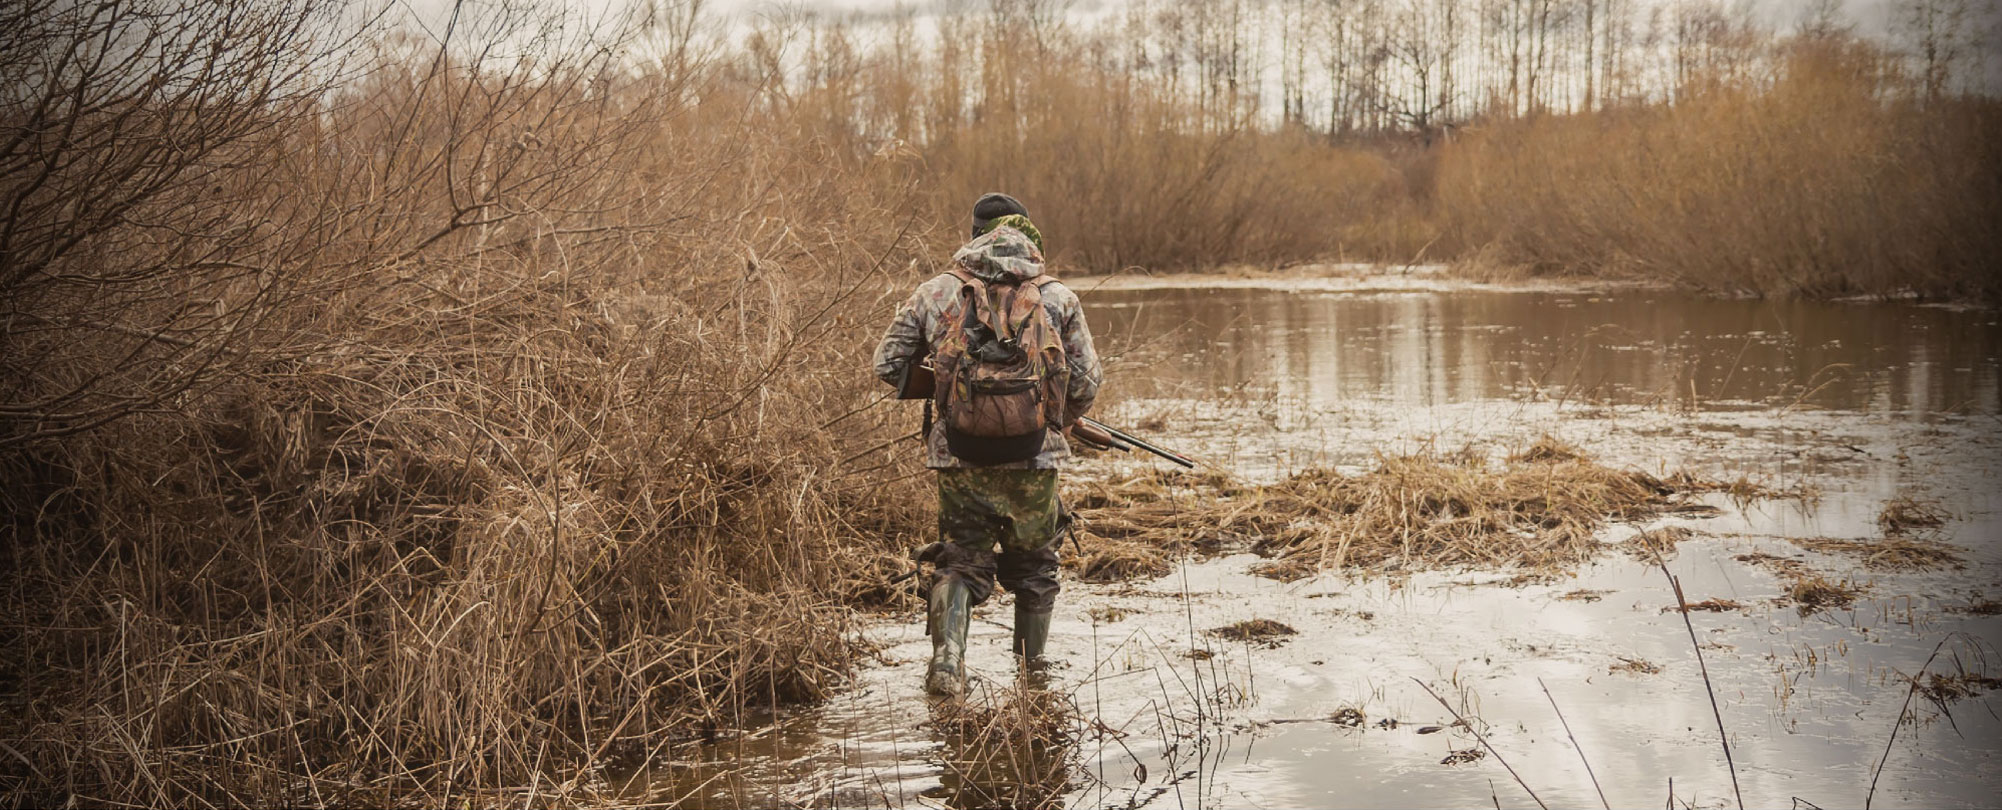 Man hunting in wetland